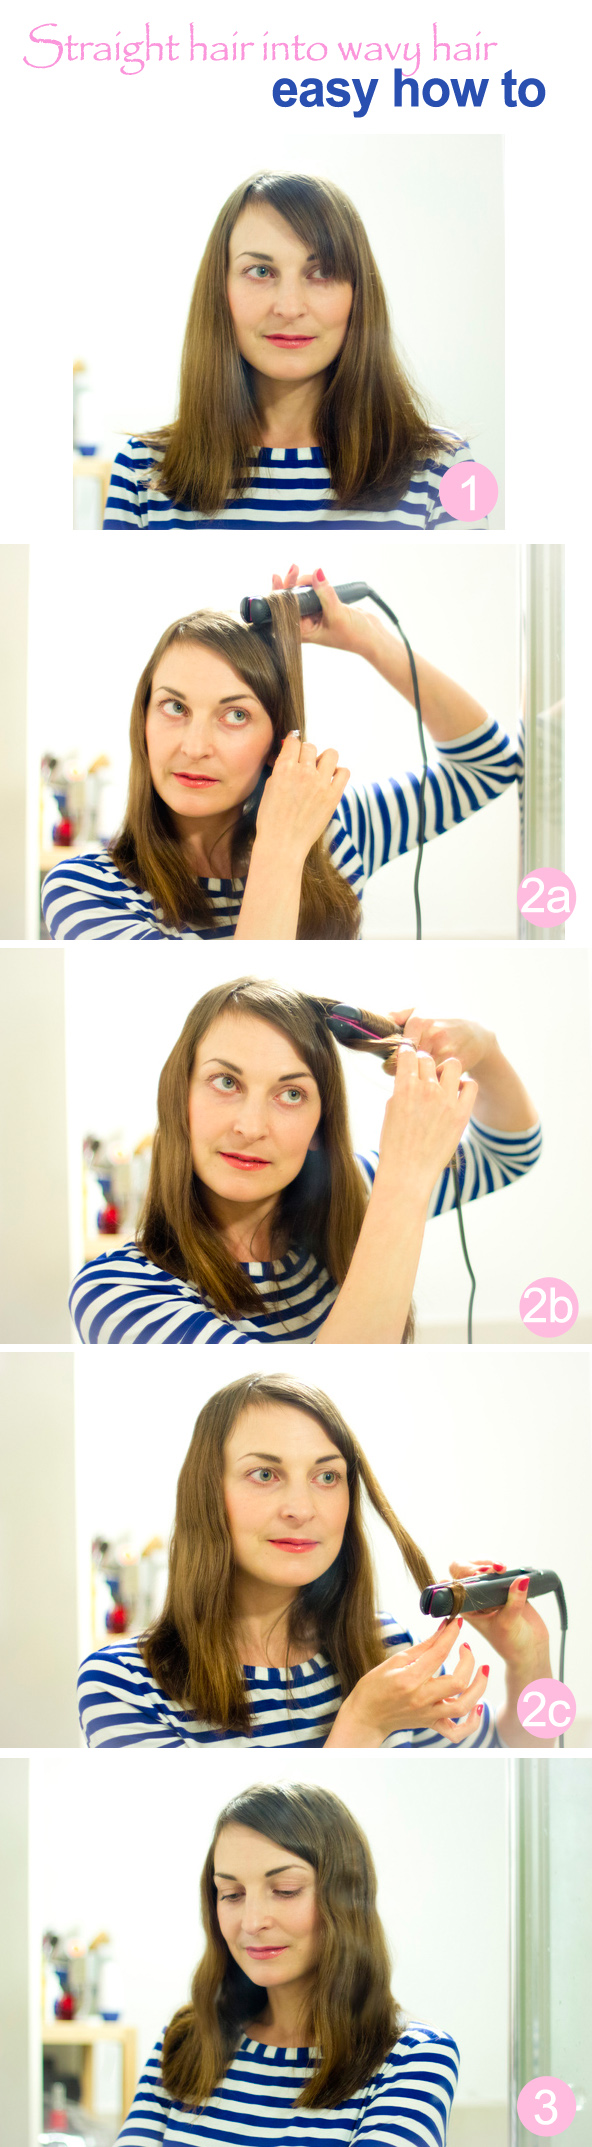 wavy hair how to tutorial for straight hair